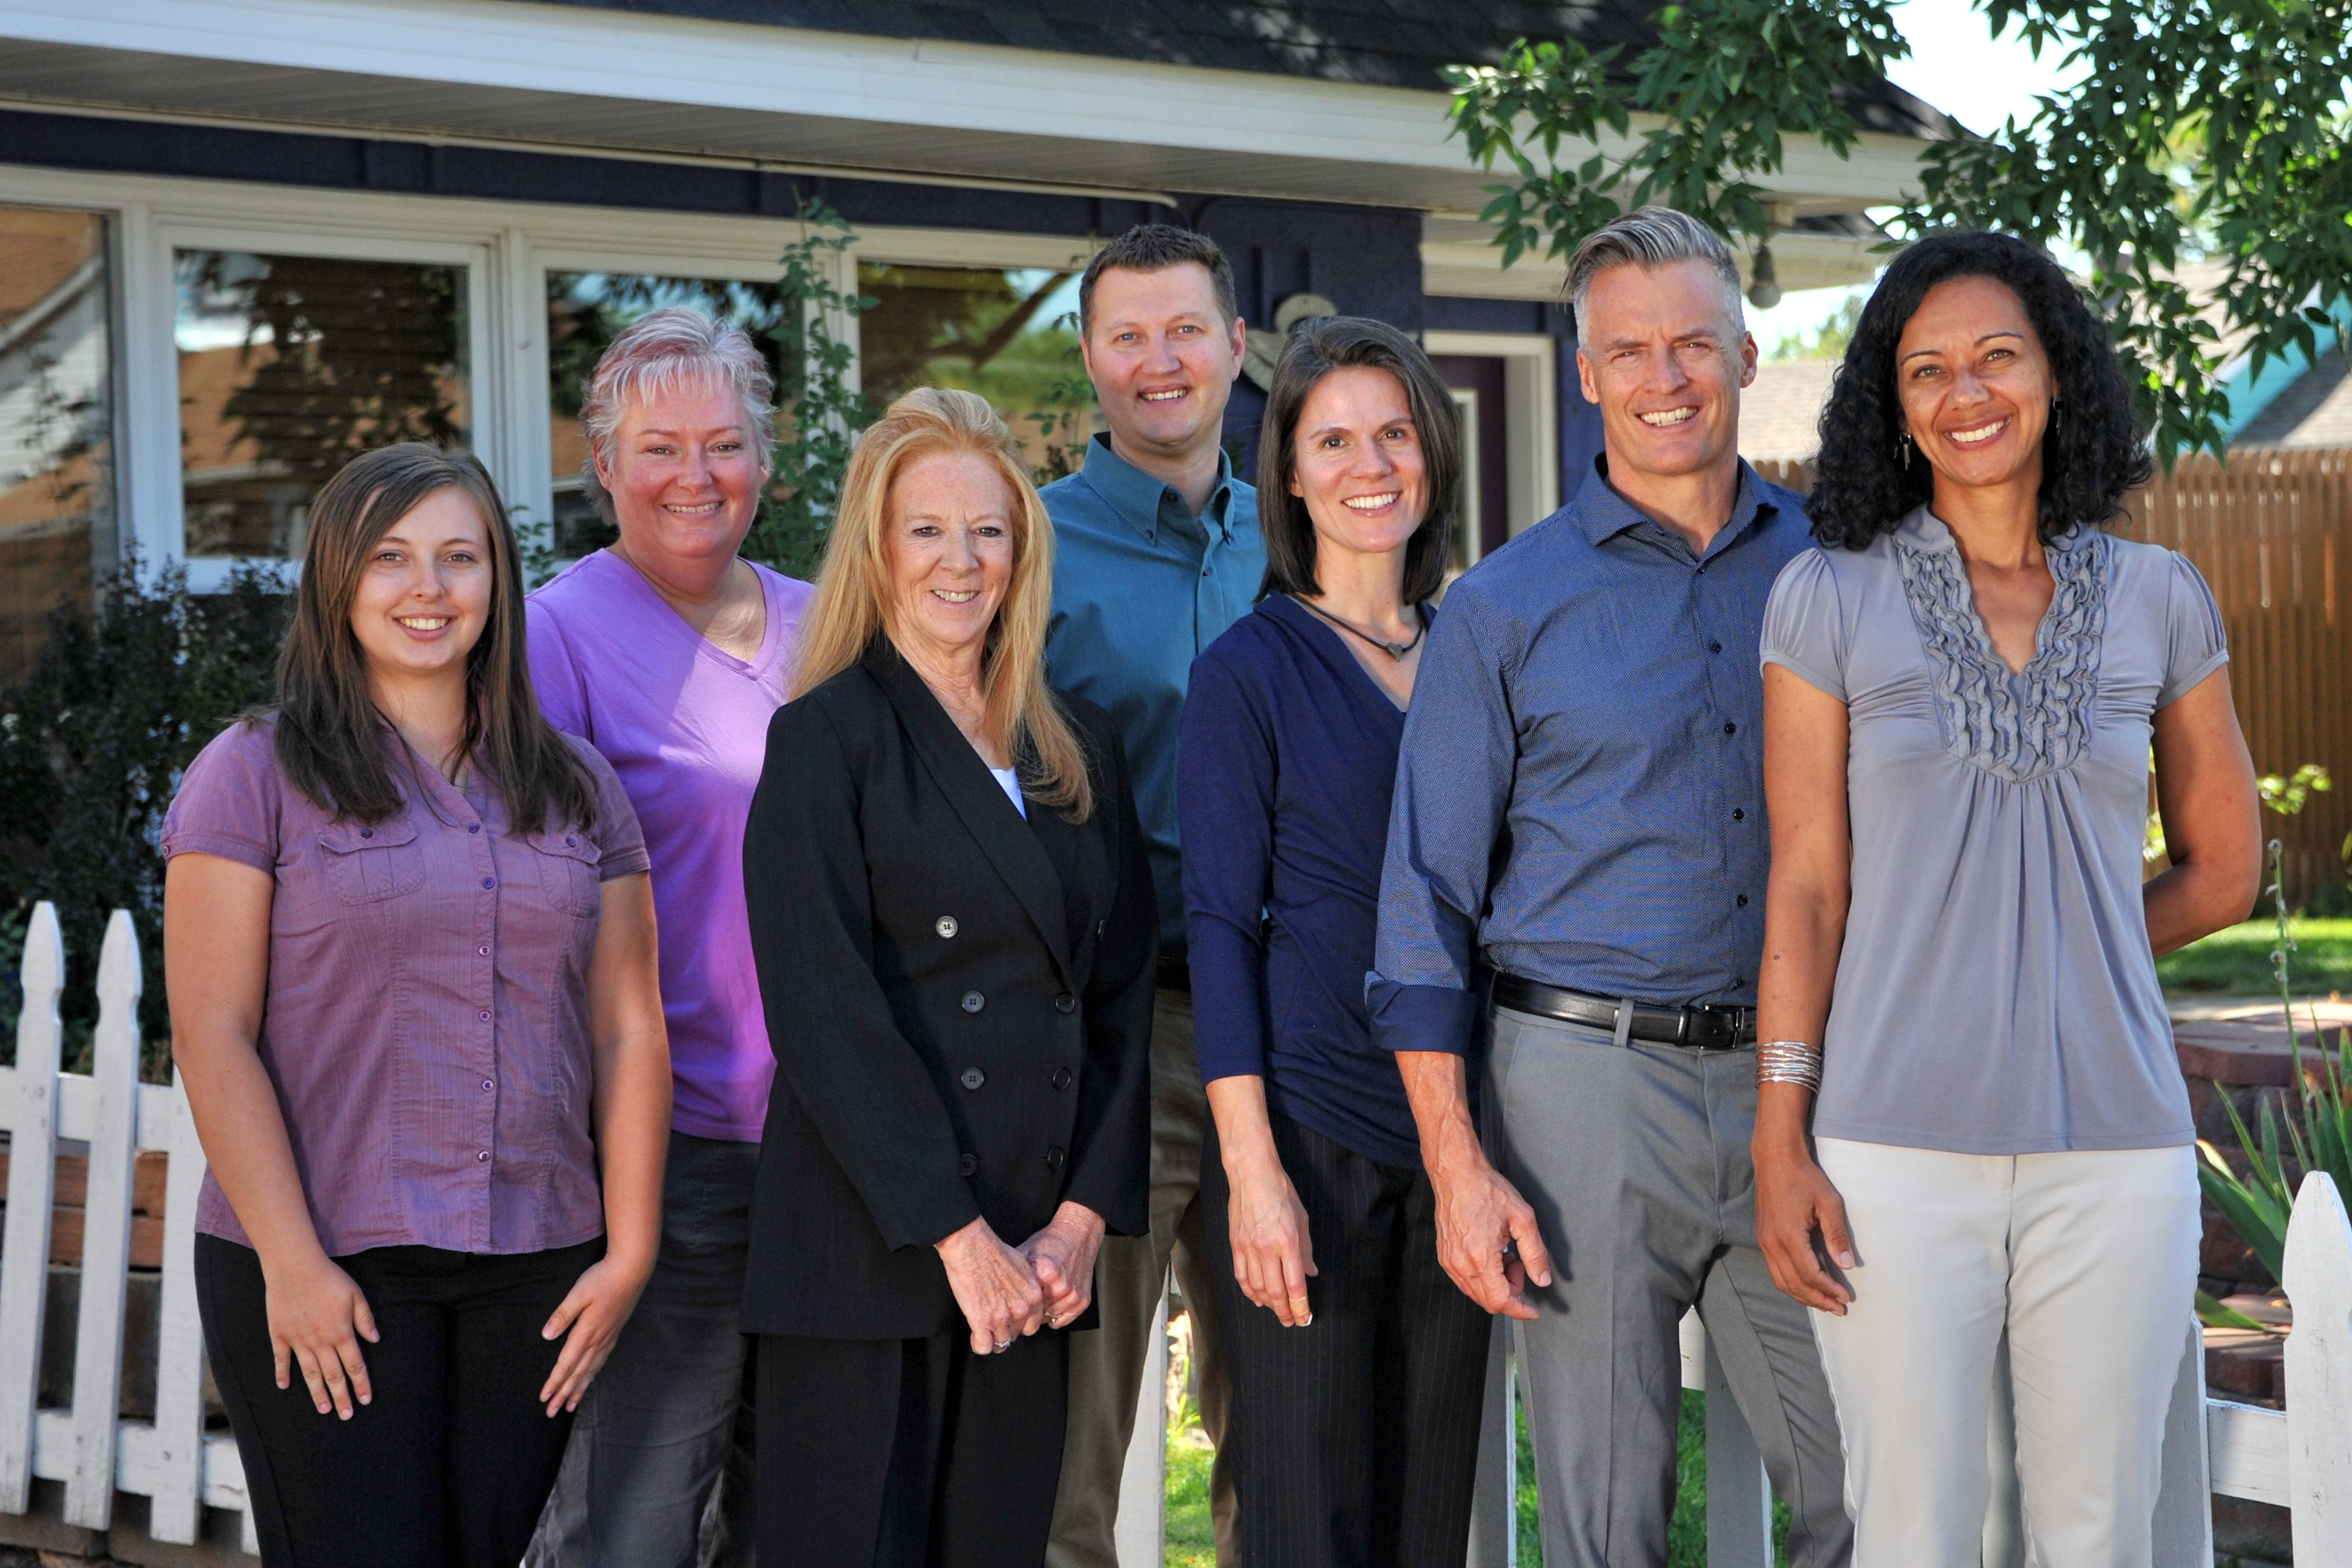 Group photo of The Chiropractic Center of Erie and Chiropractic Center of Longmont Team